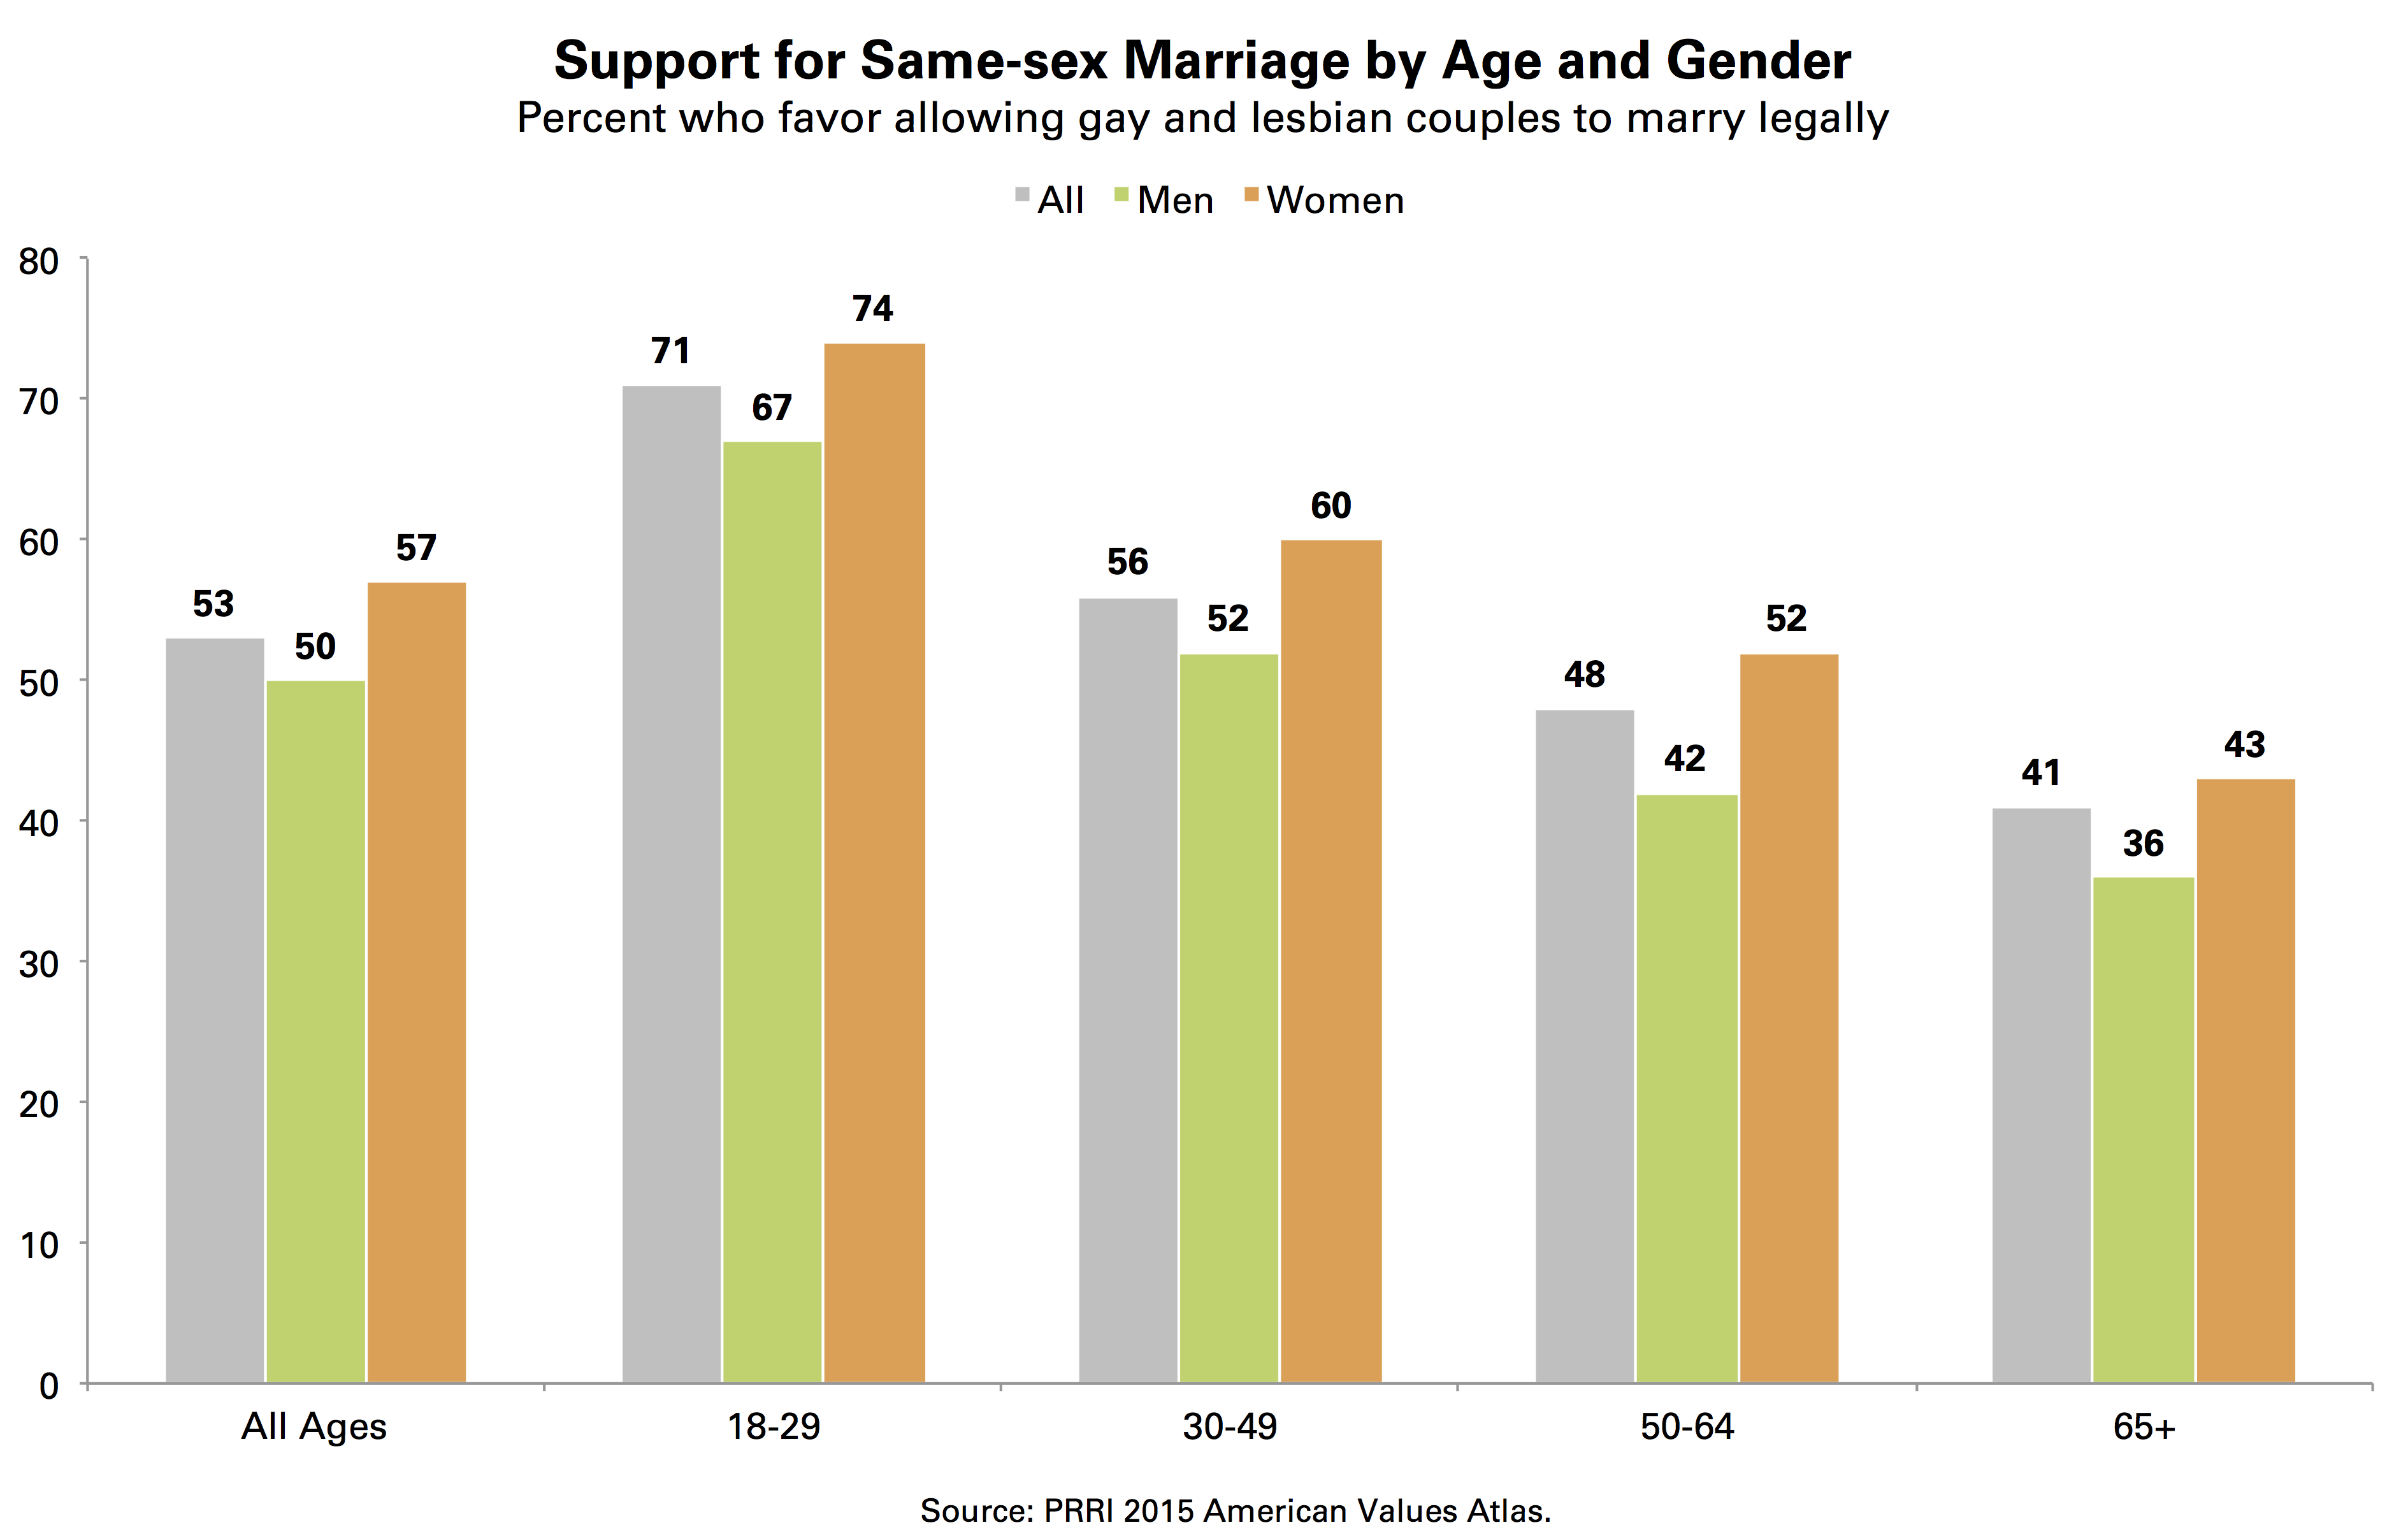 Americans Support for Gay Marriage Remains High, at